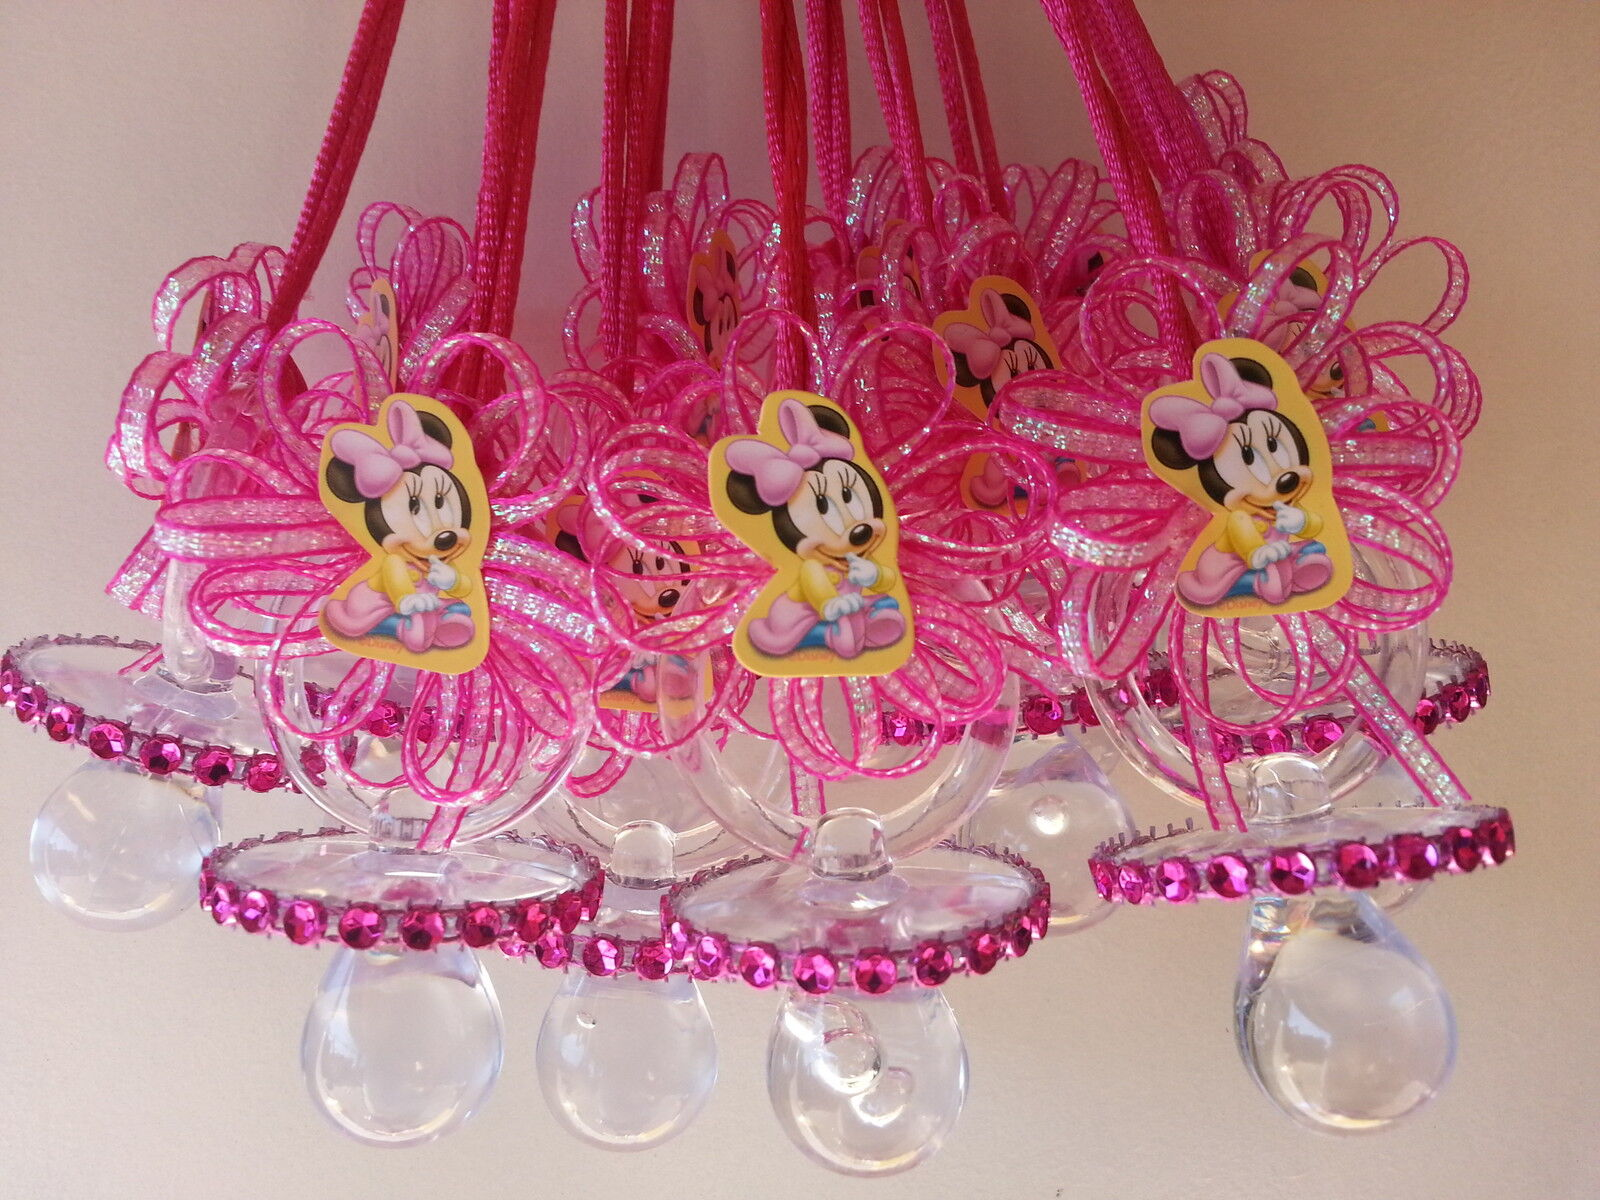 Awesome 12 Baby Minnie Mouse Pacifier Necklaces Baby Shower Game Favors Prize Girl  Decor